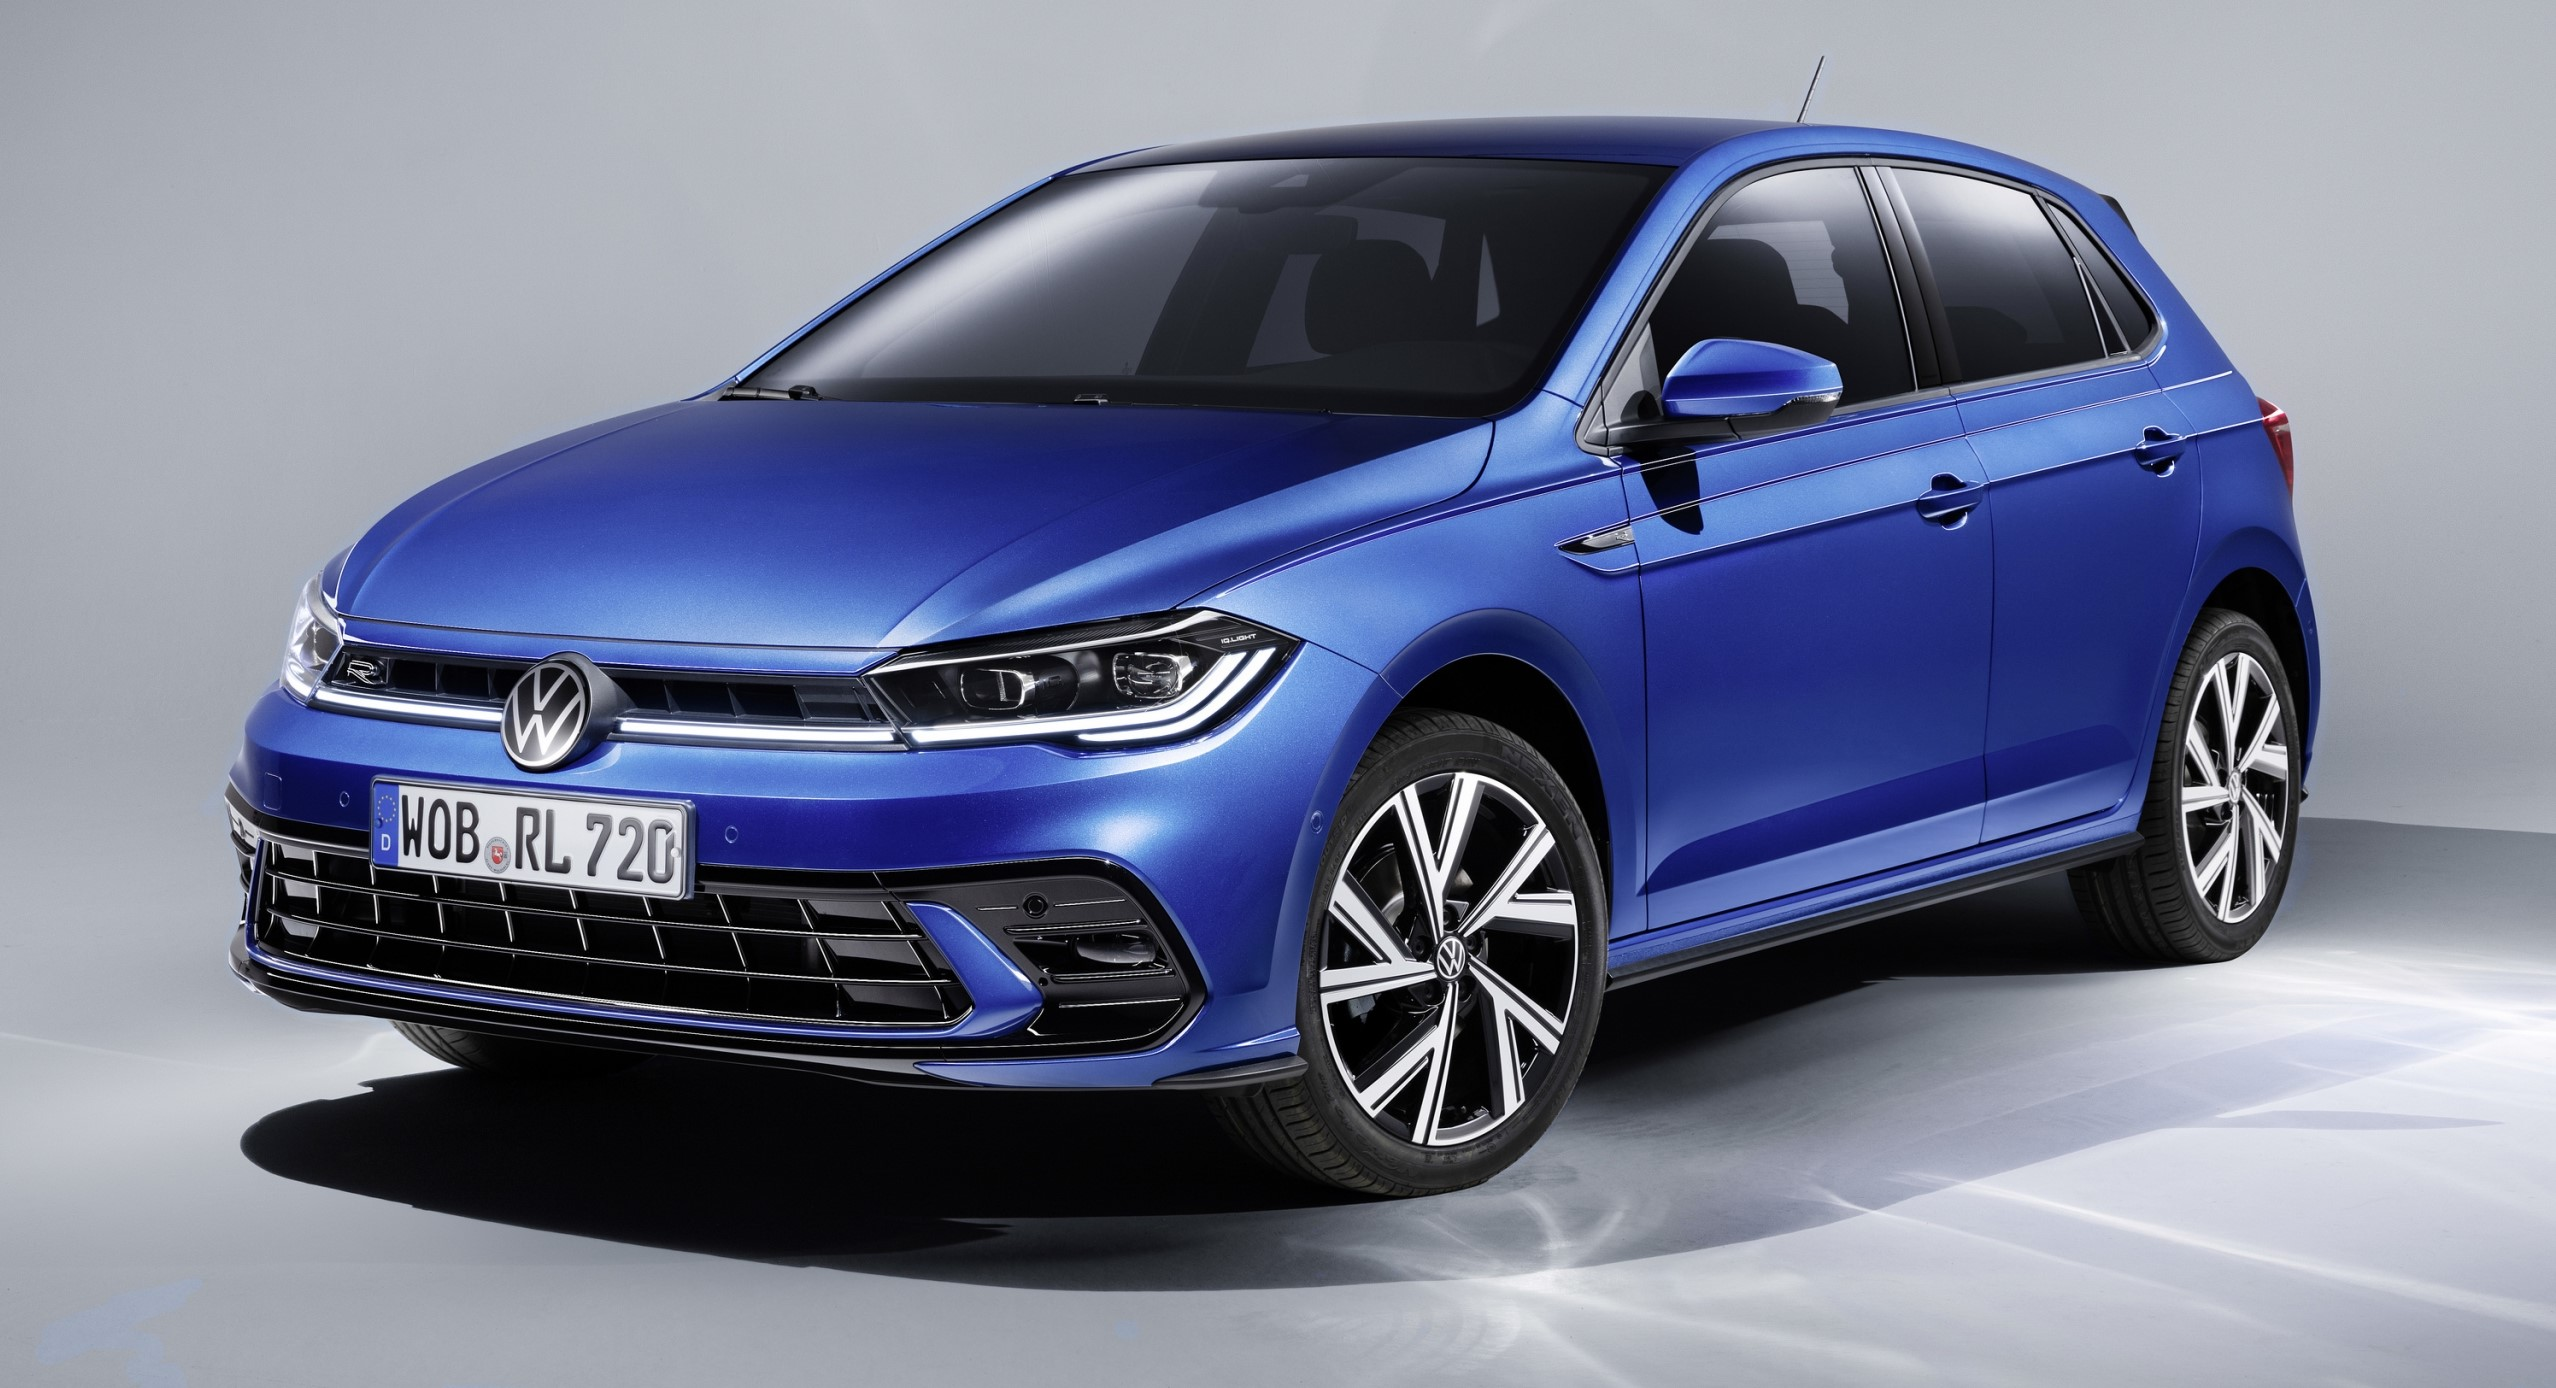 New Volkswagen Polo takes a bow